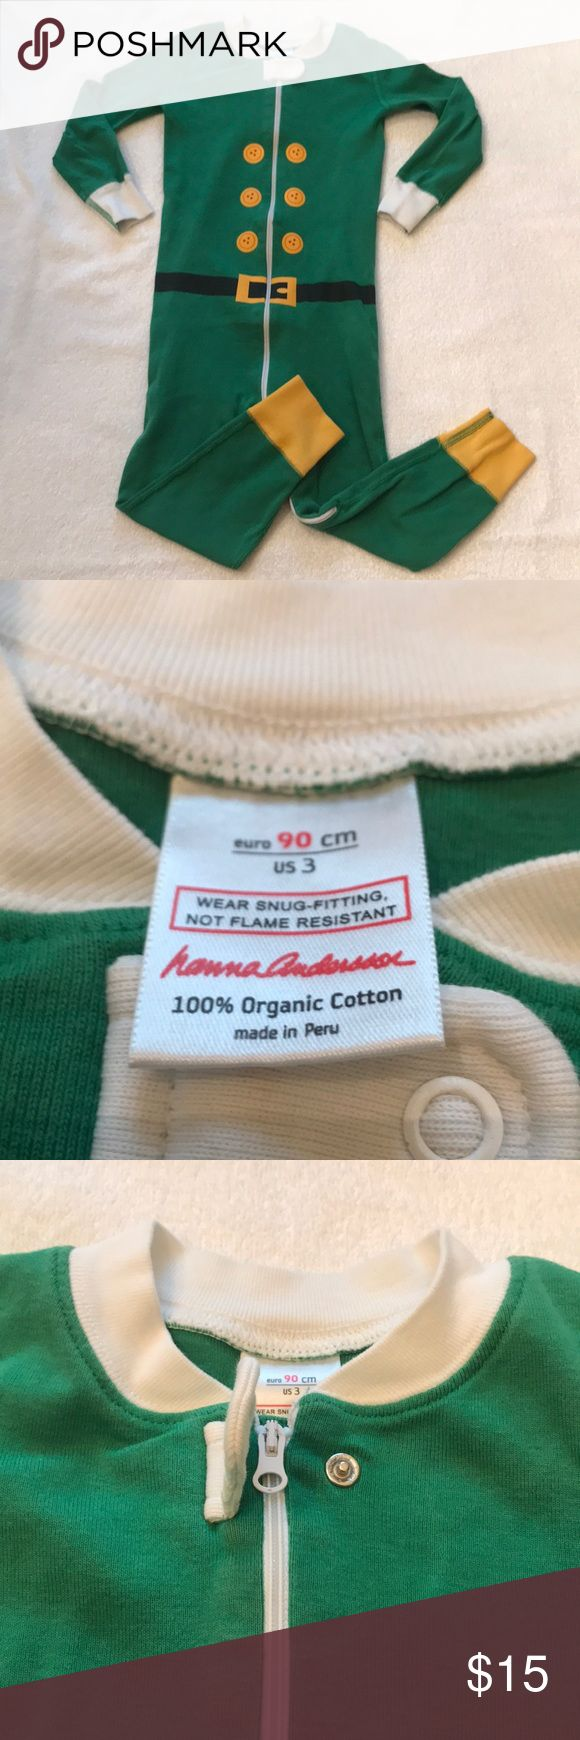 EUC Hanna Andersson 3T organic cotton Elf Pajamas EUC Hanna Andersson 3T organic cotton Elf Pajamas as shown. No stains, holes, rips, or fraying. Zipper works well. Snap functions as intended. Adorable on! Please inspect pictures carefully before buying for signs of wear and use as these have been worn. Hanna Andersson Pajamas